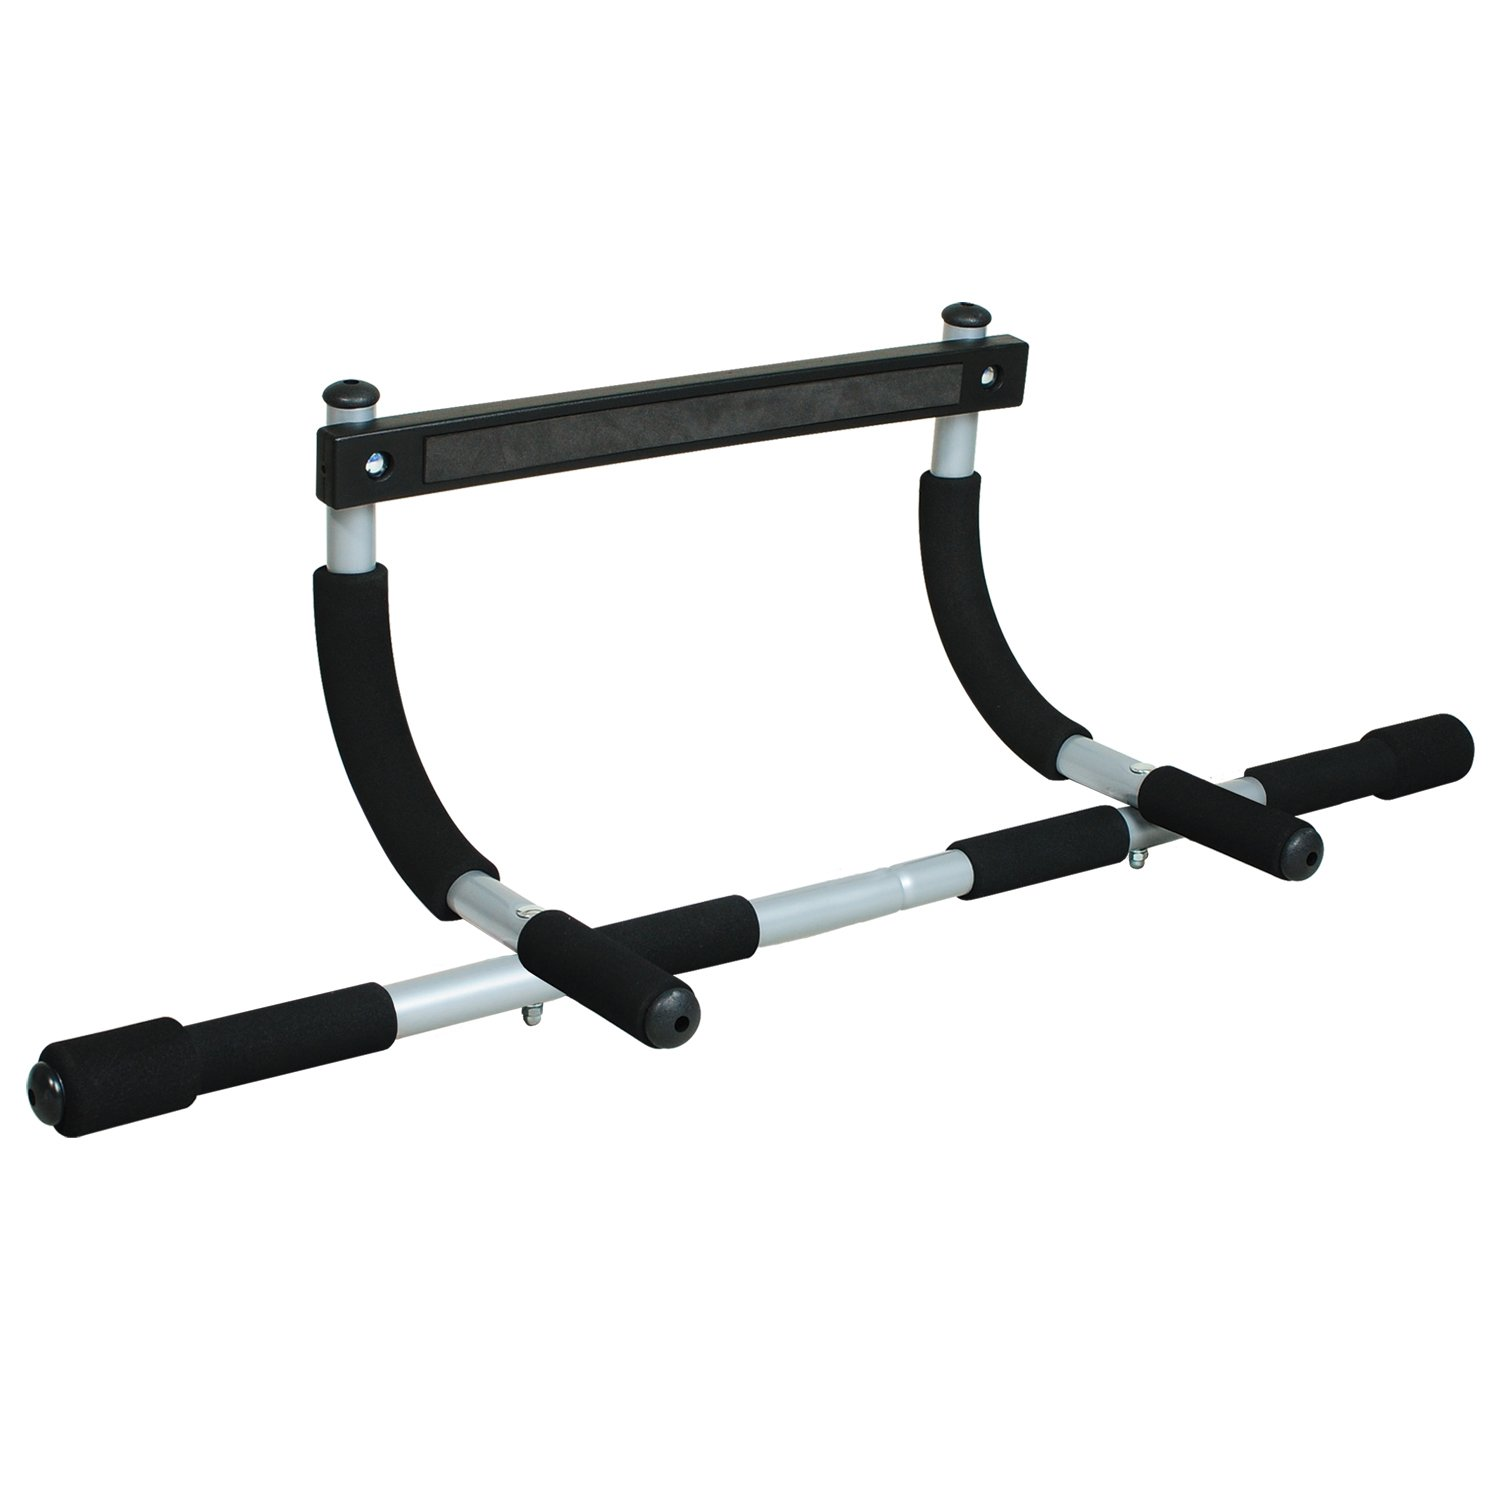 calisthenics home bar bars equipment workout sport door frame pull for empire fitness gym product chin exercise adjustable up